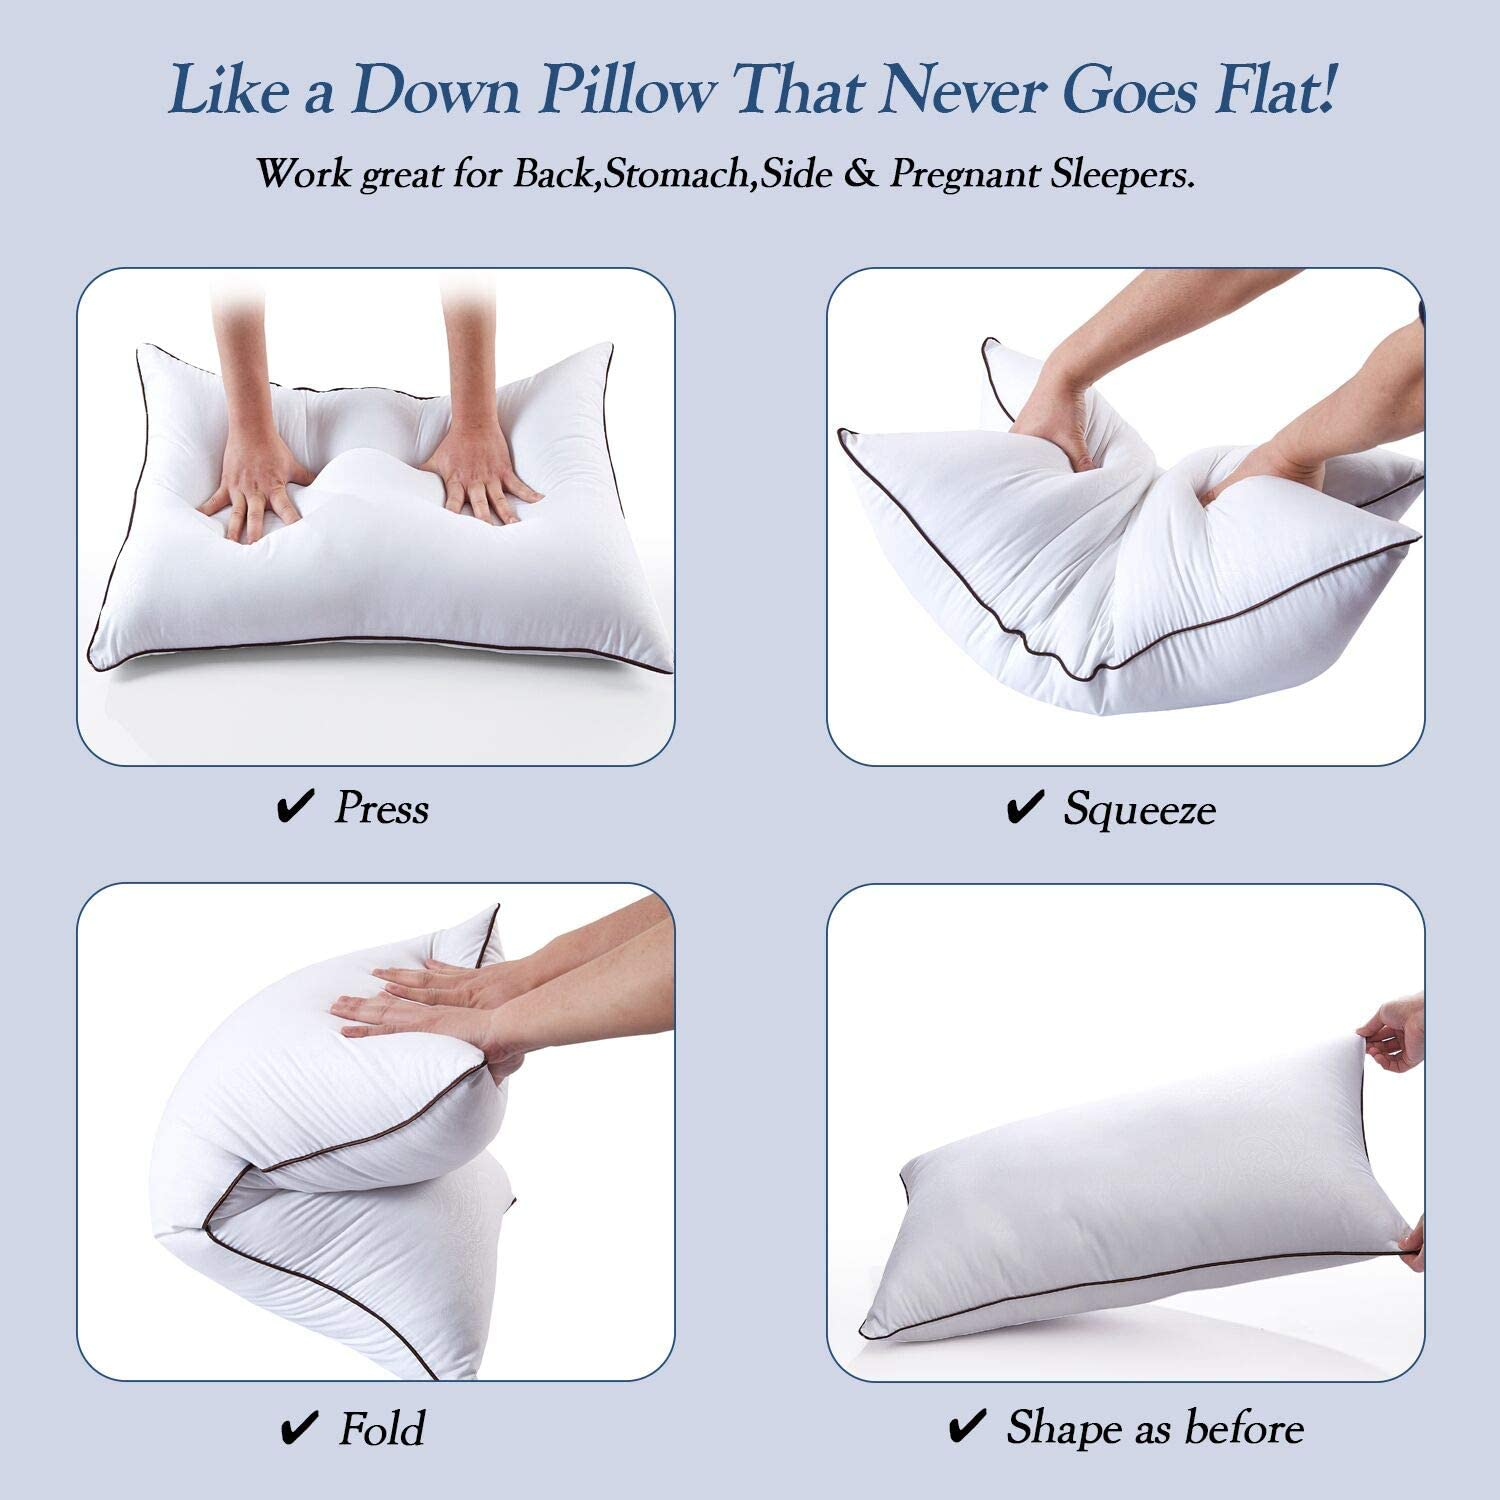 Bed Pillows for Sleeping 2 Pack, Hypoallergenic Pillows for Side and Back Sleeper, Down Alternative Hotel Quality Sleeping Pillows Soft Pillow-Standard Size 20x26inches: Kitchen & Dining